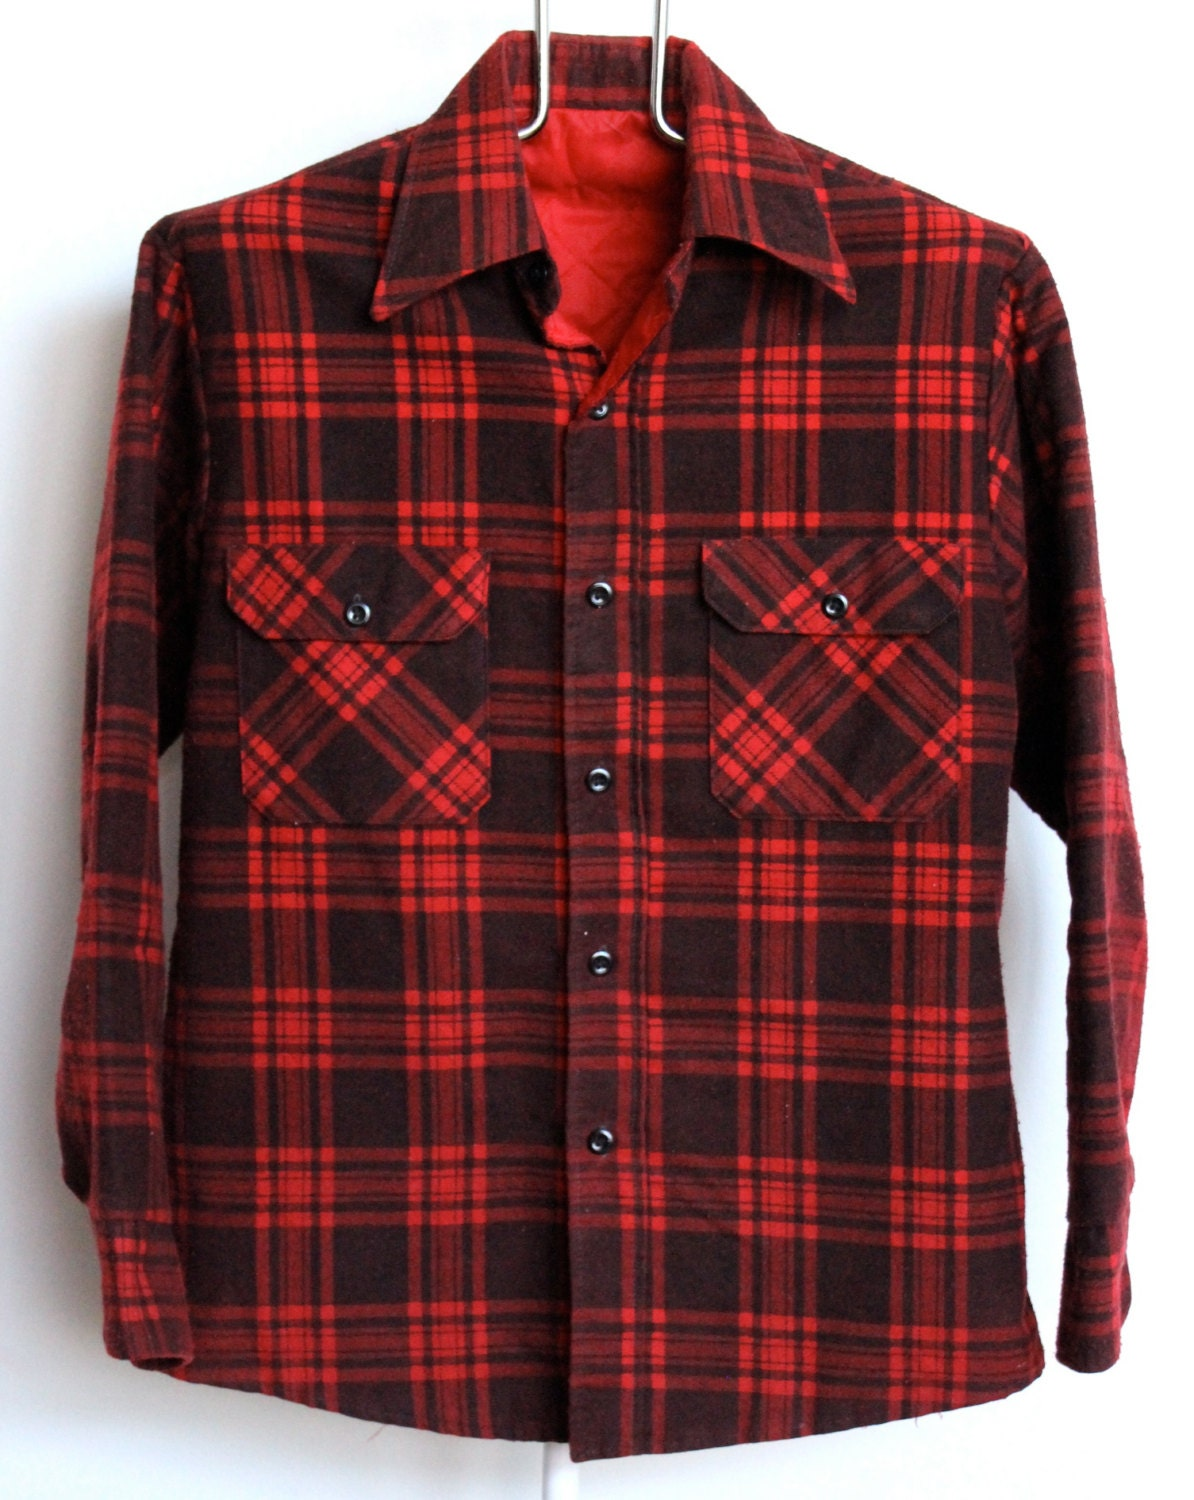 red plaid quilted flannel shirt jacket mens medium large lined